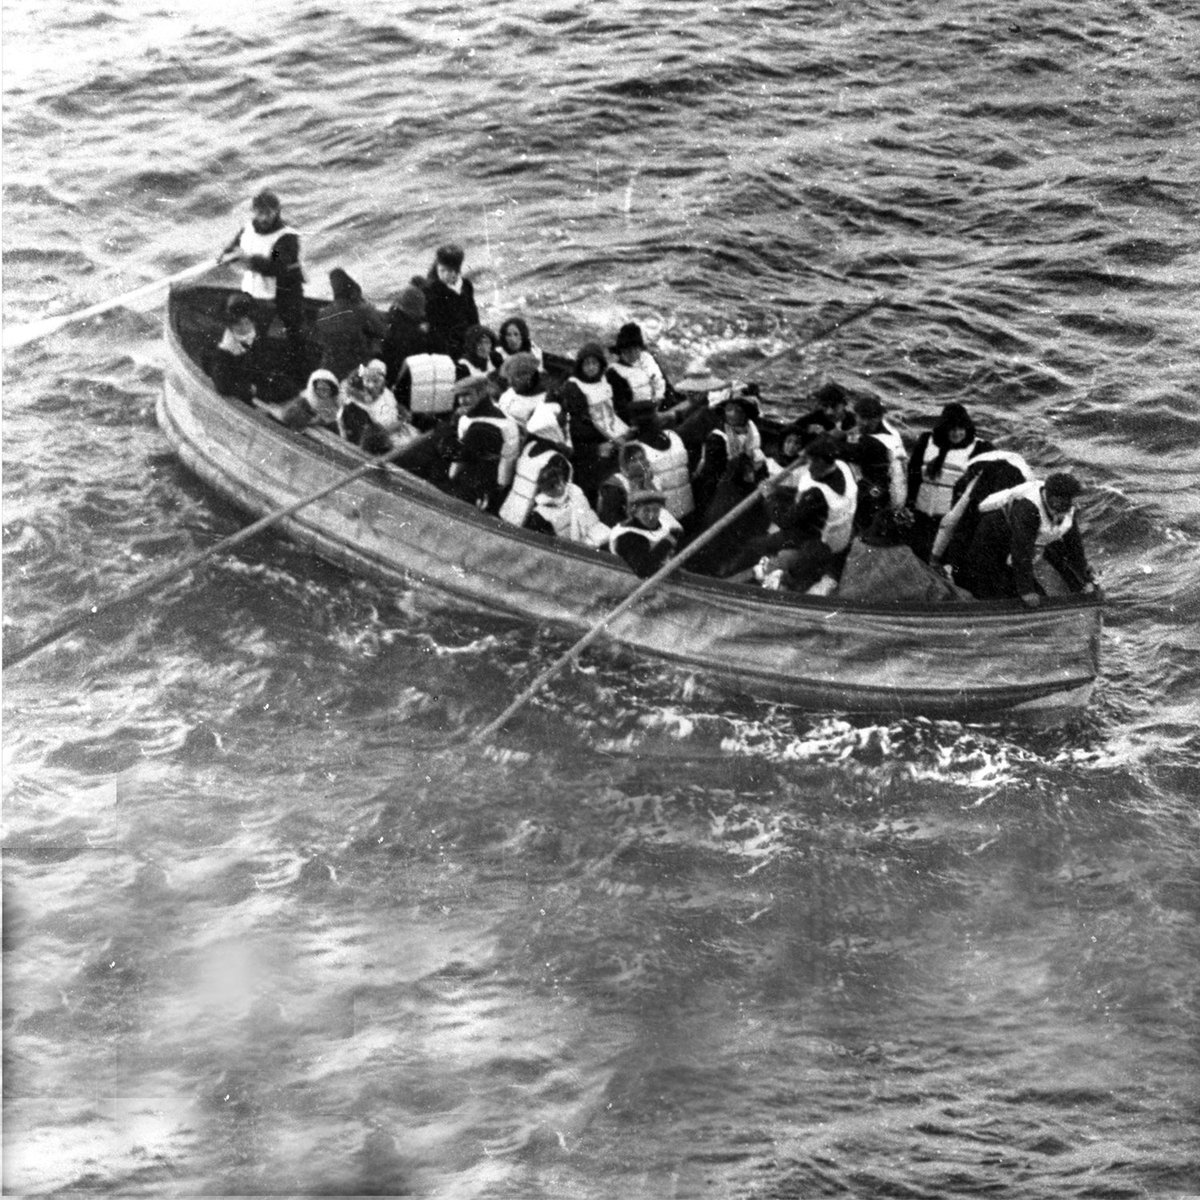 Even if all 20 lifeboats on the #Titanic had been filled to capacity, there'd only have been room for 1,178 people. https://t.co/0iUgWzTTb4